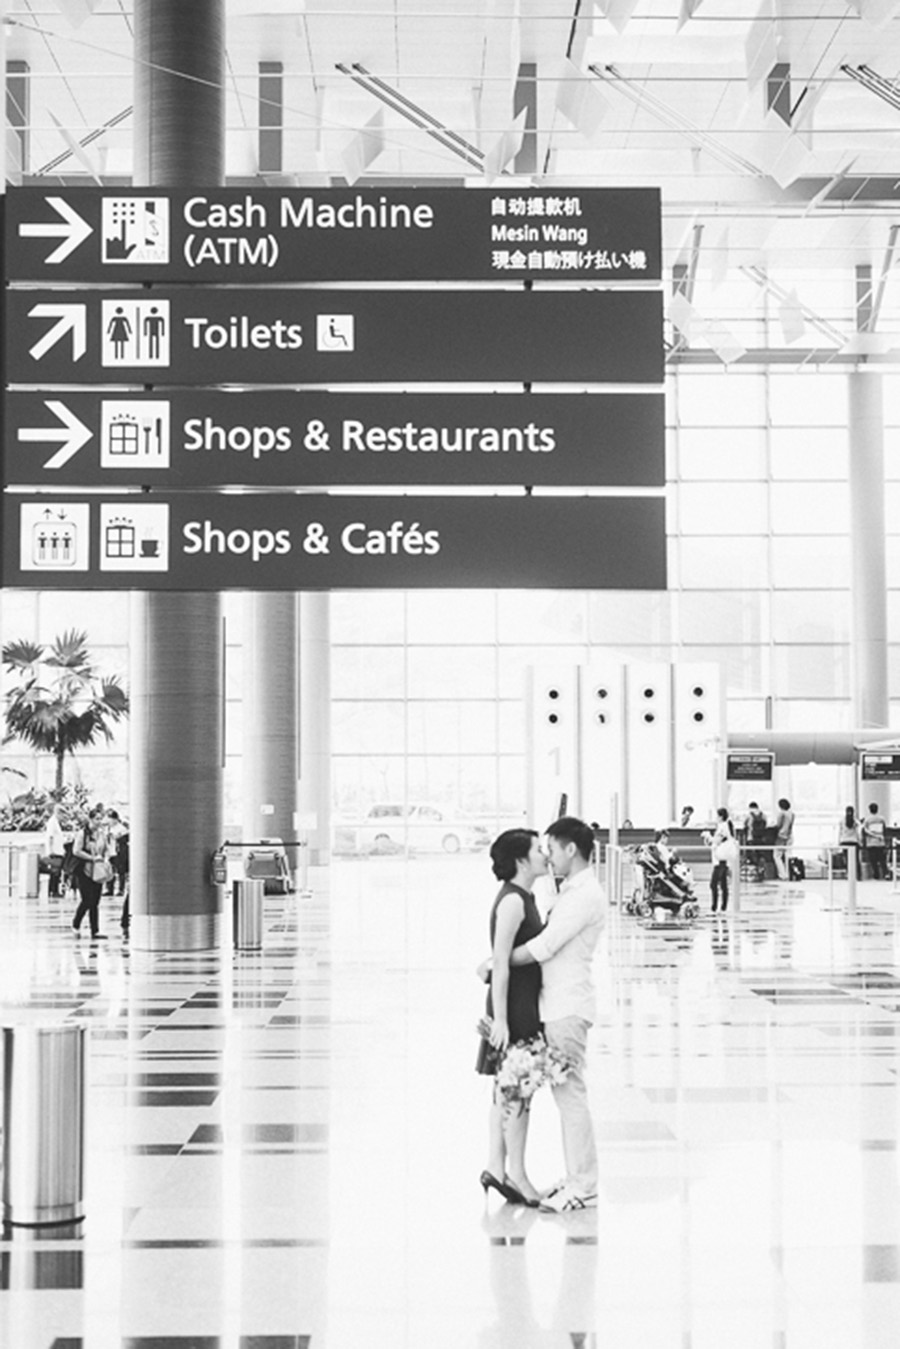 23ChangiAirport-BeautifulMomentPhotography